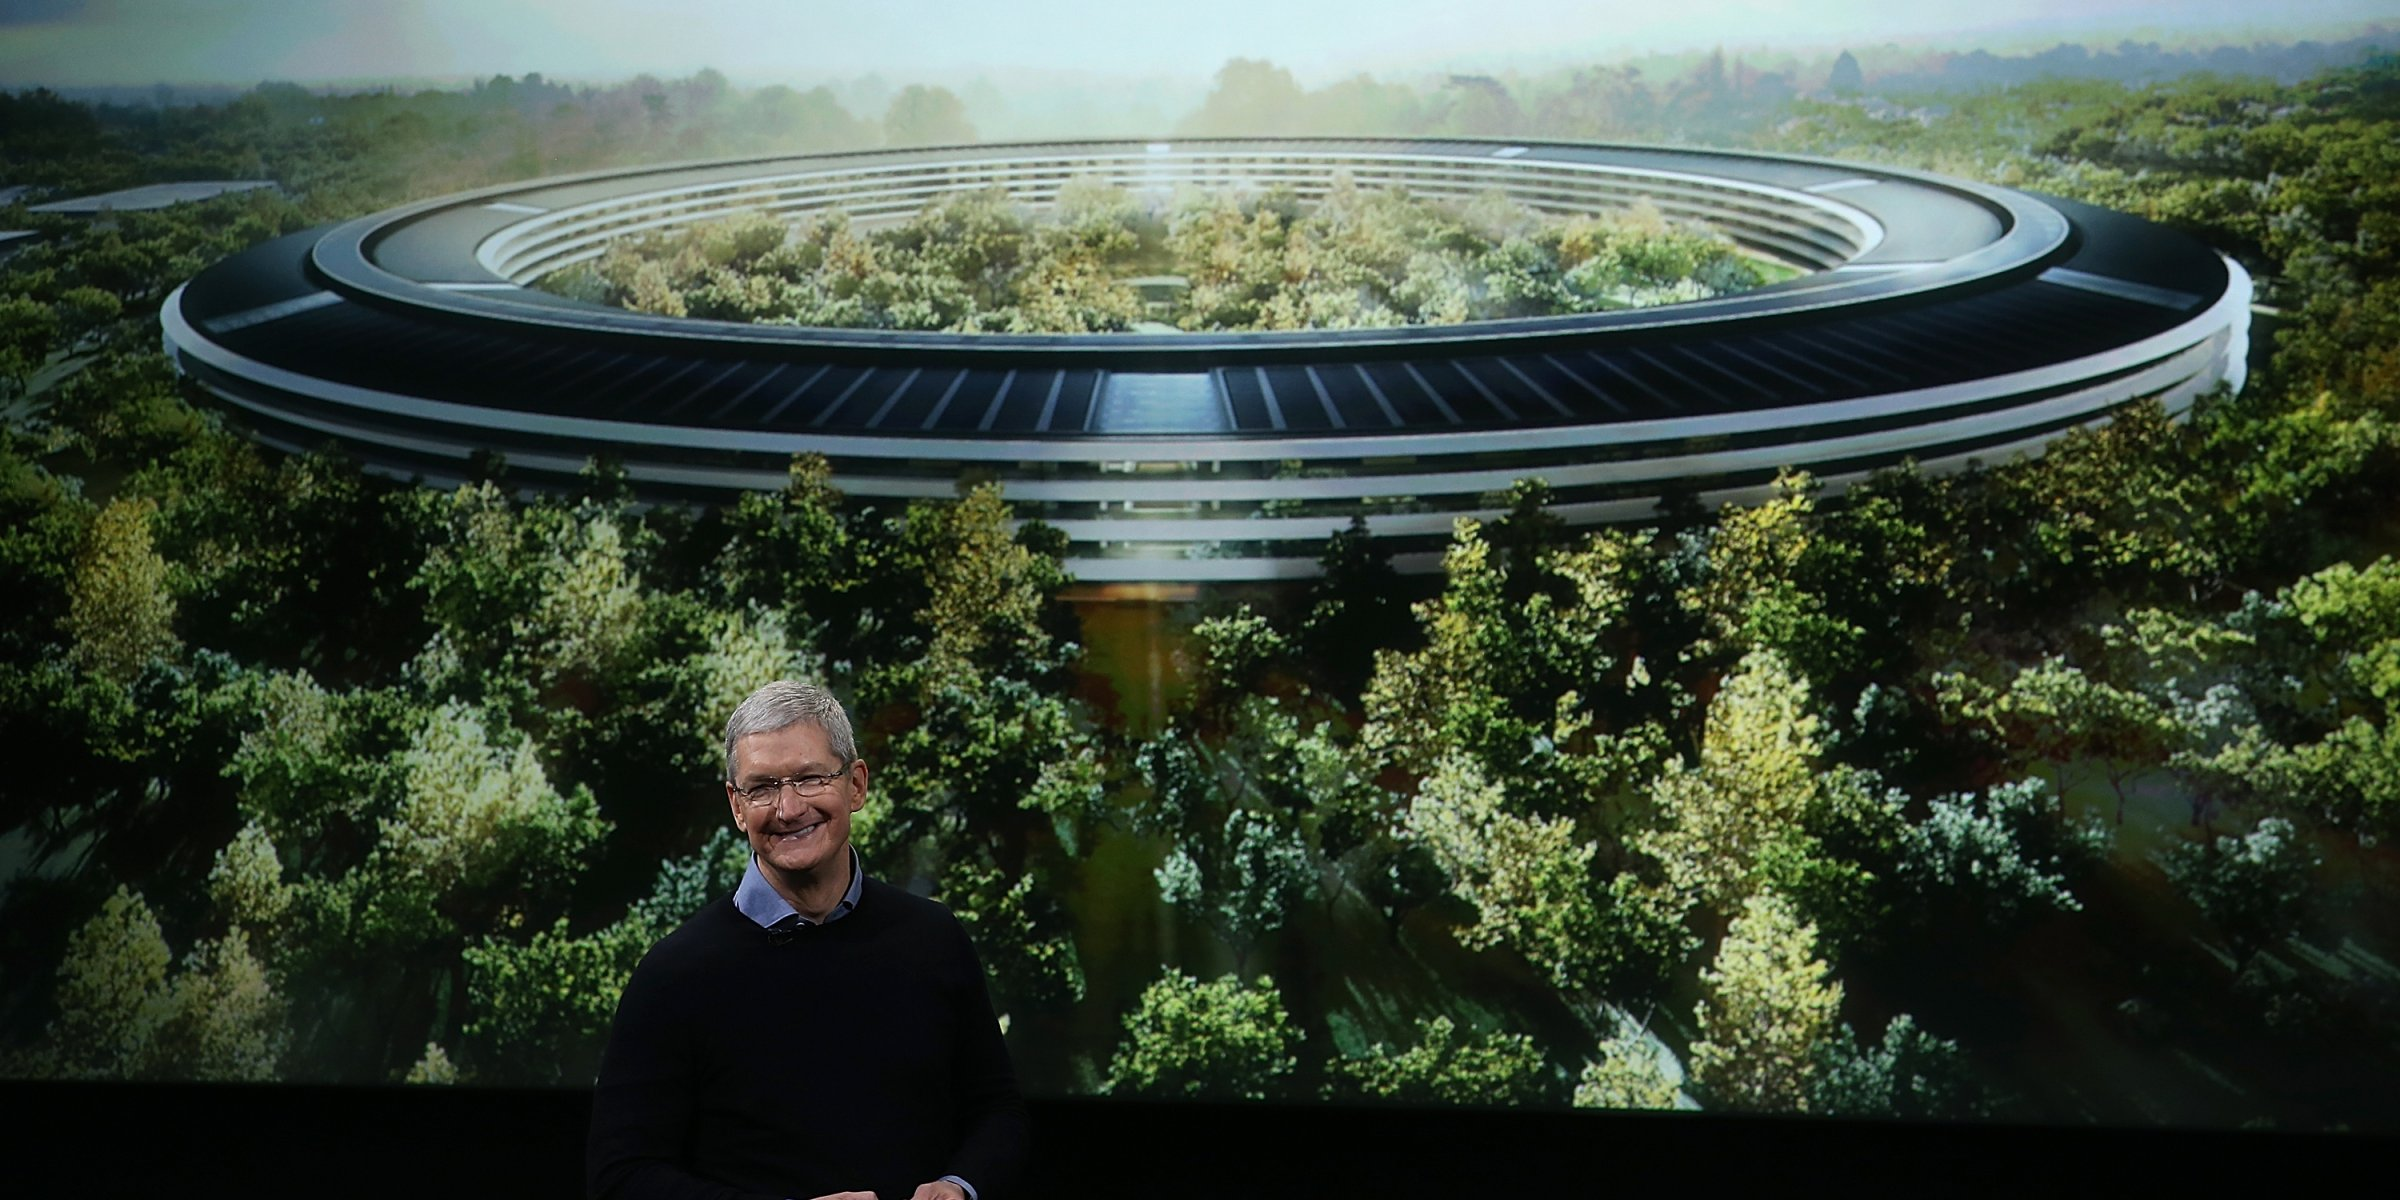 Apple Headquarters sits on a 165 acre site.